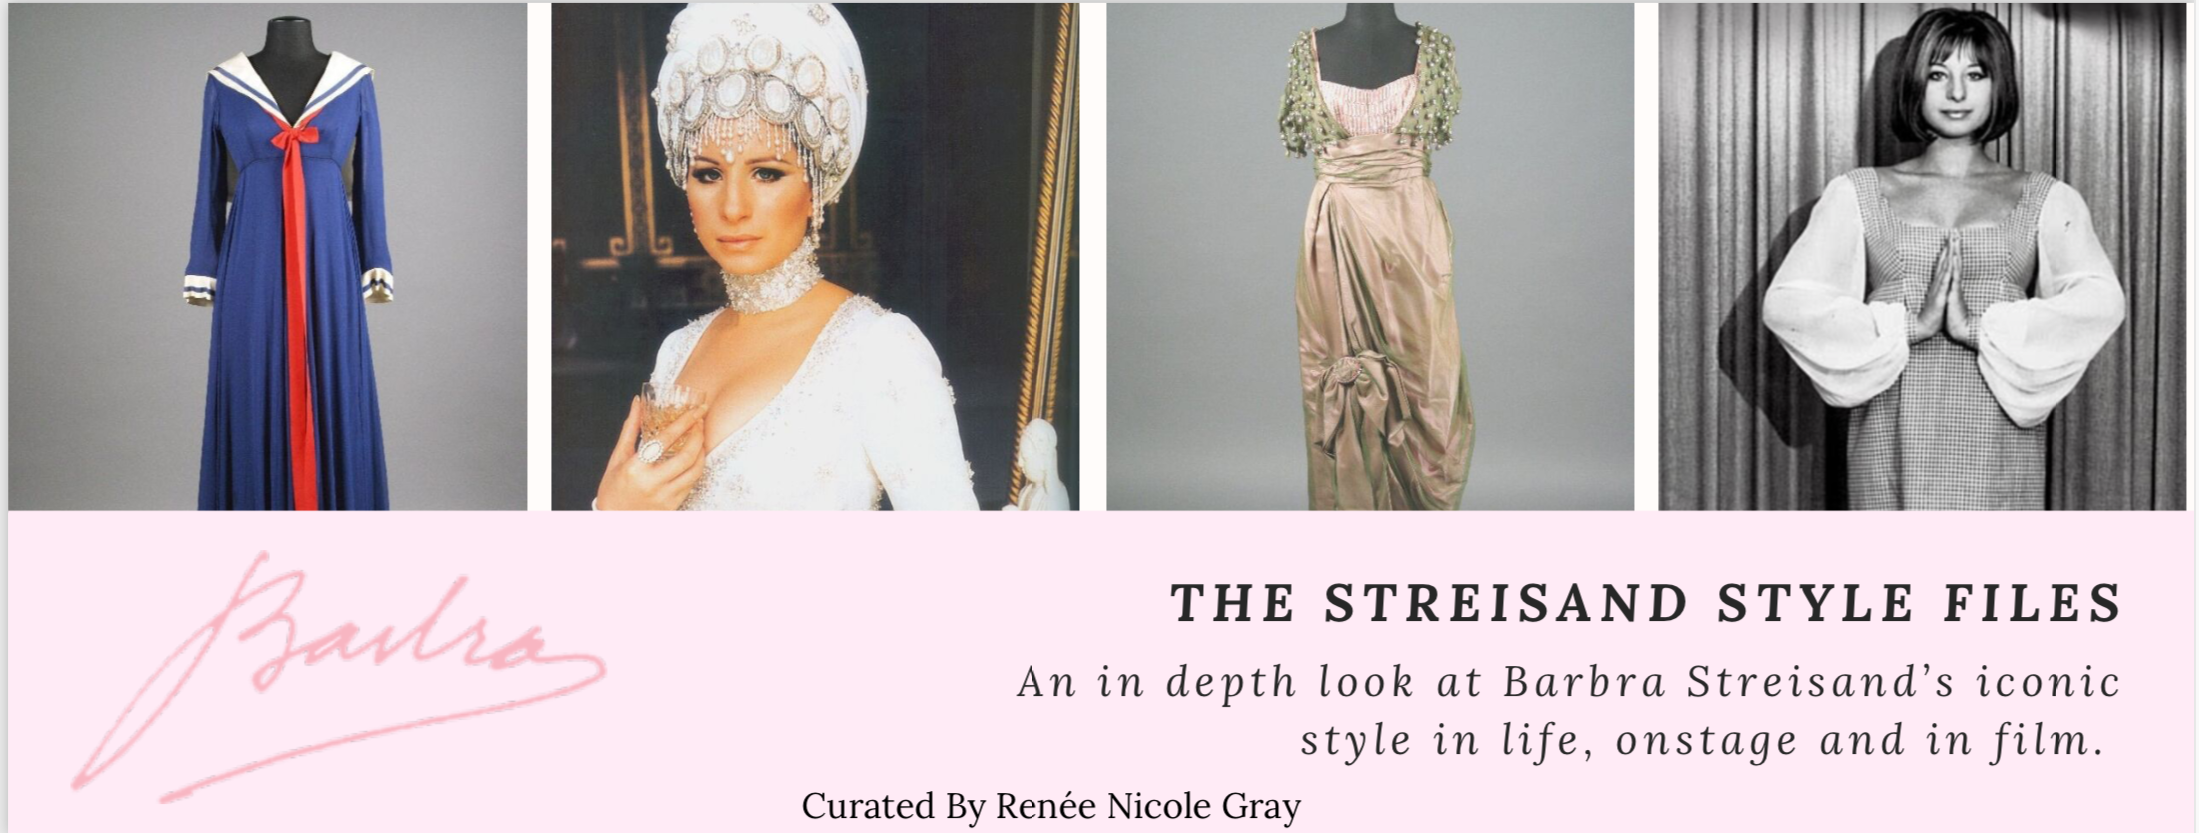 The Streisand Style Files